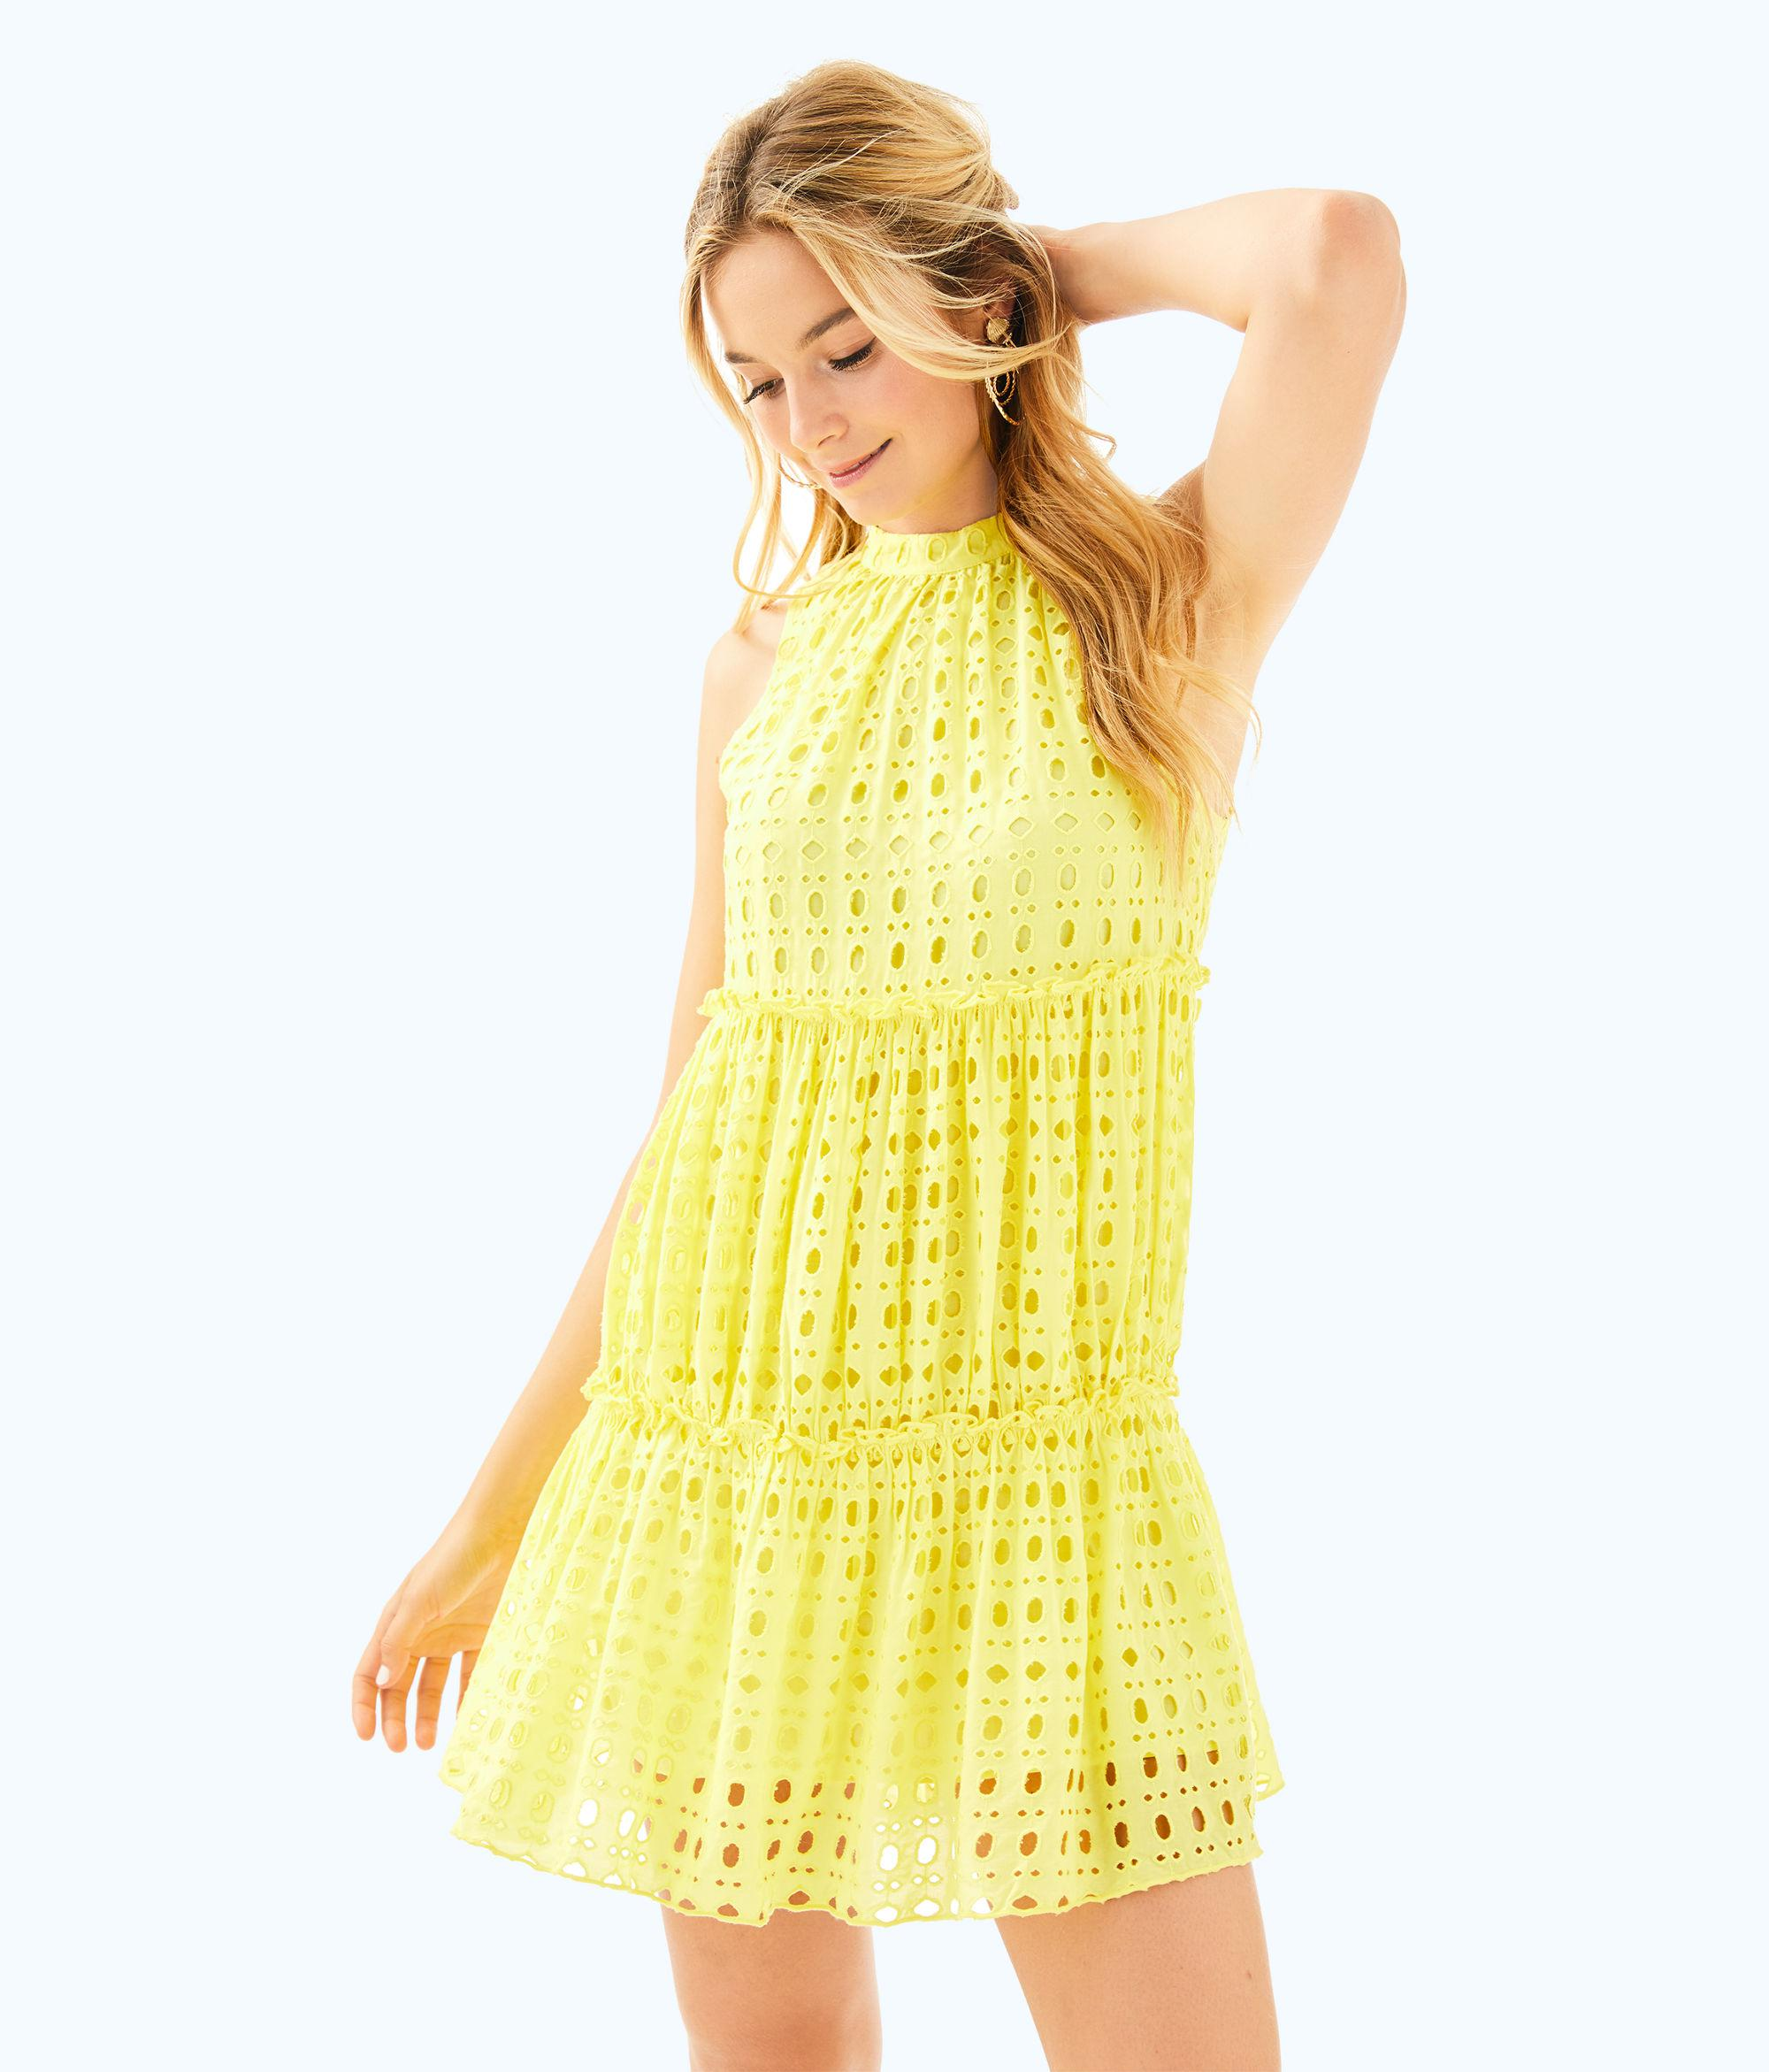 7c8fc2d3833c2b Gallery. Previously sold at: Lilly Pulitzer · Women's Yellow Dresses